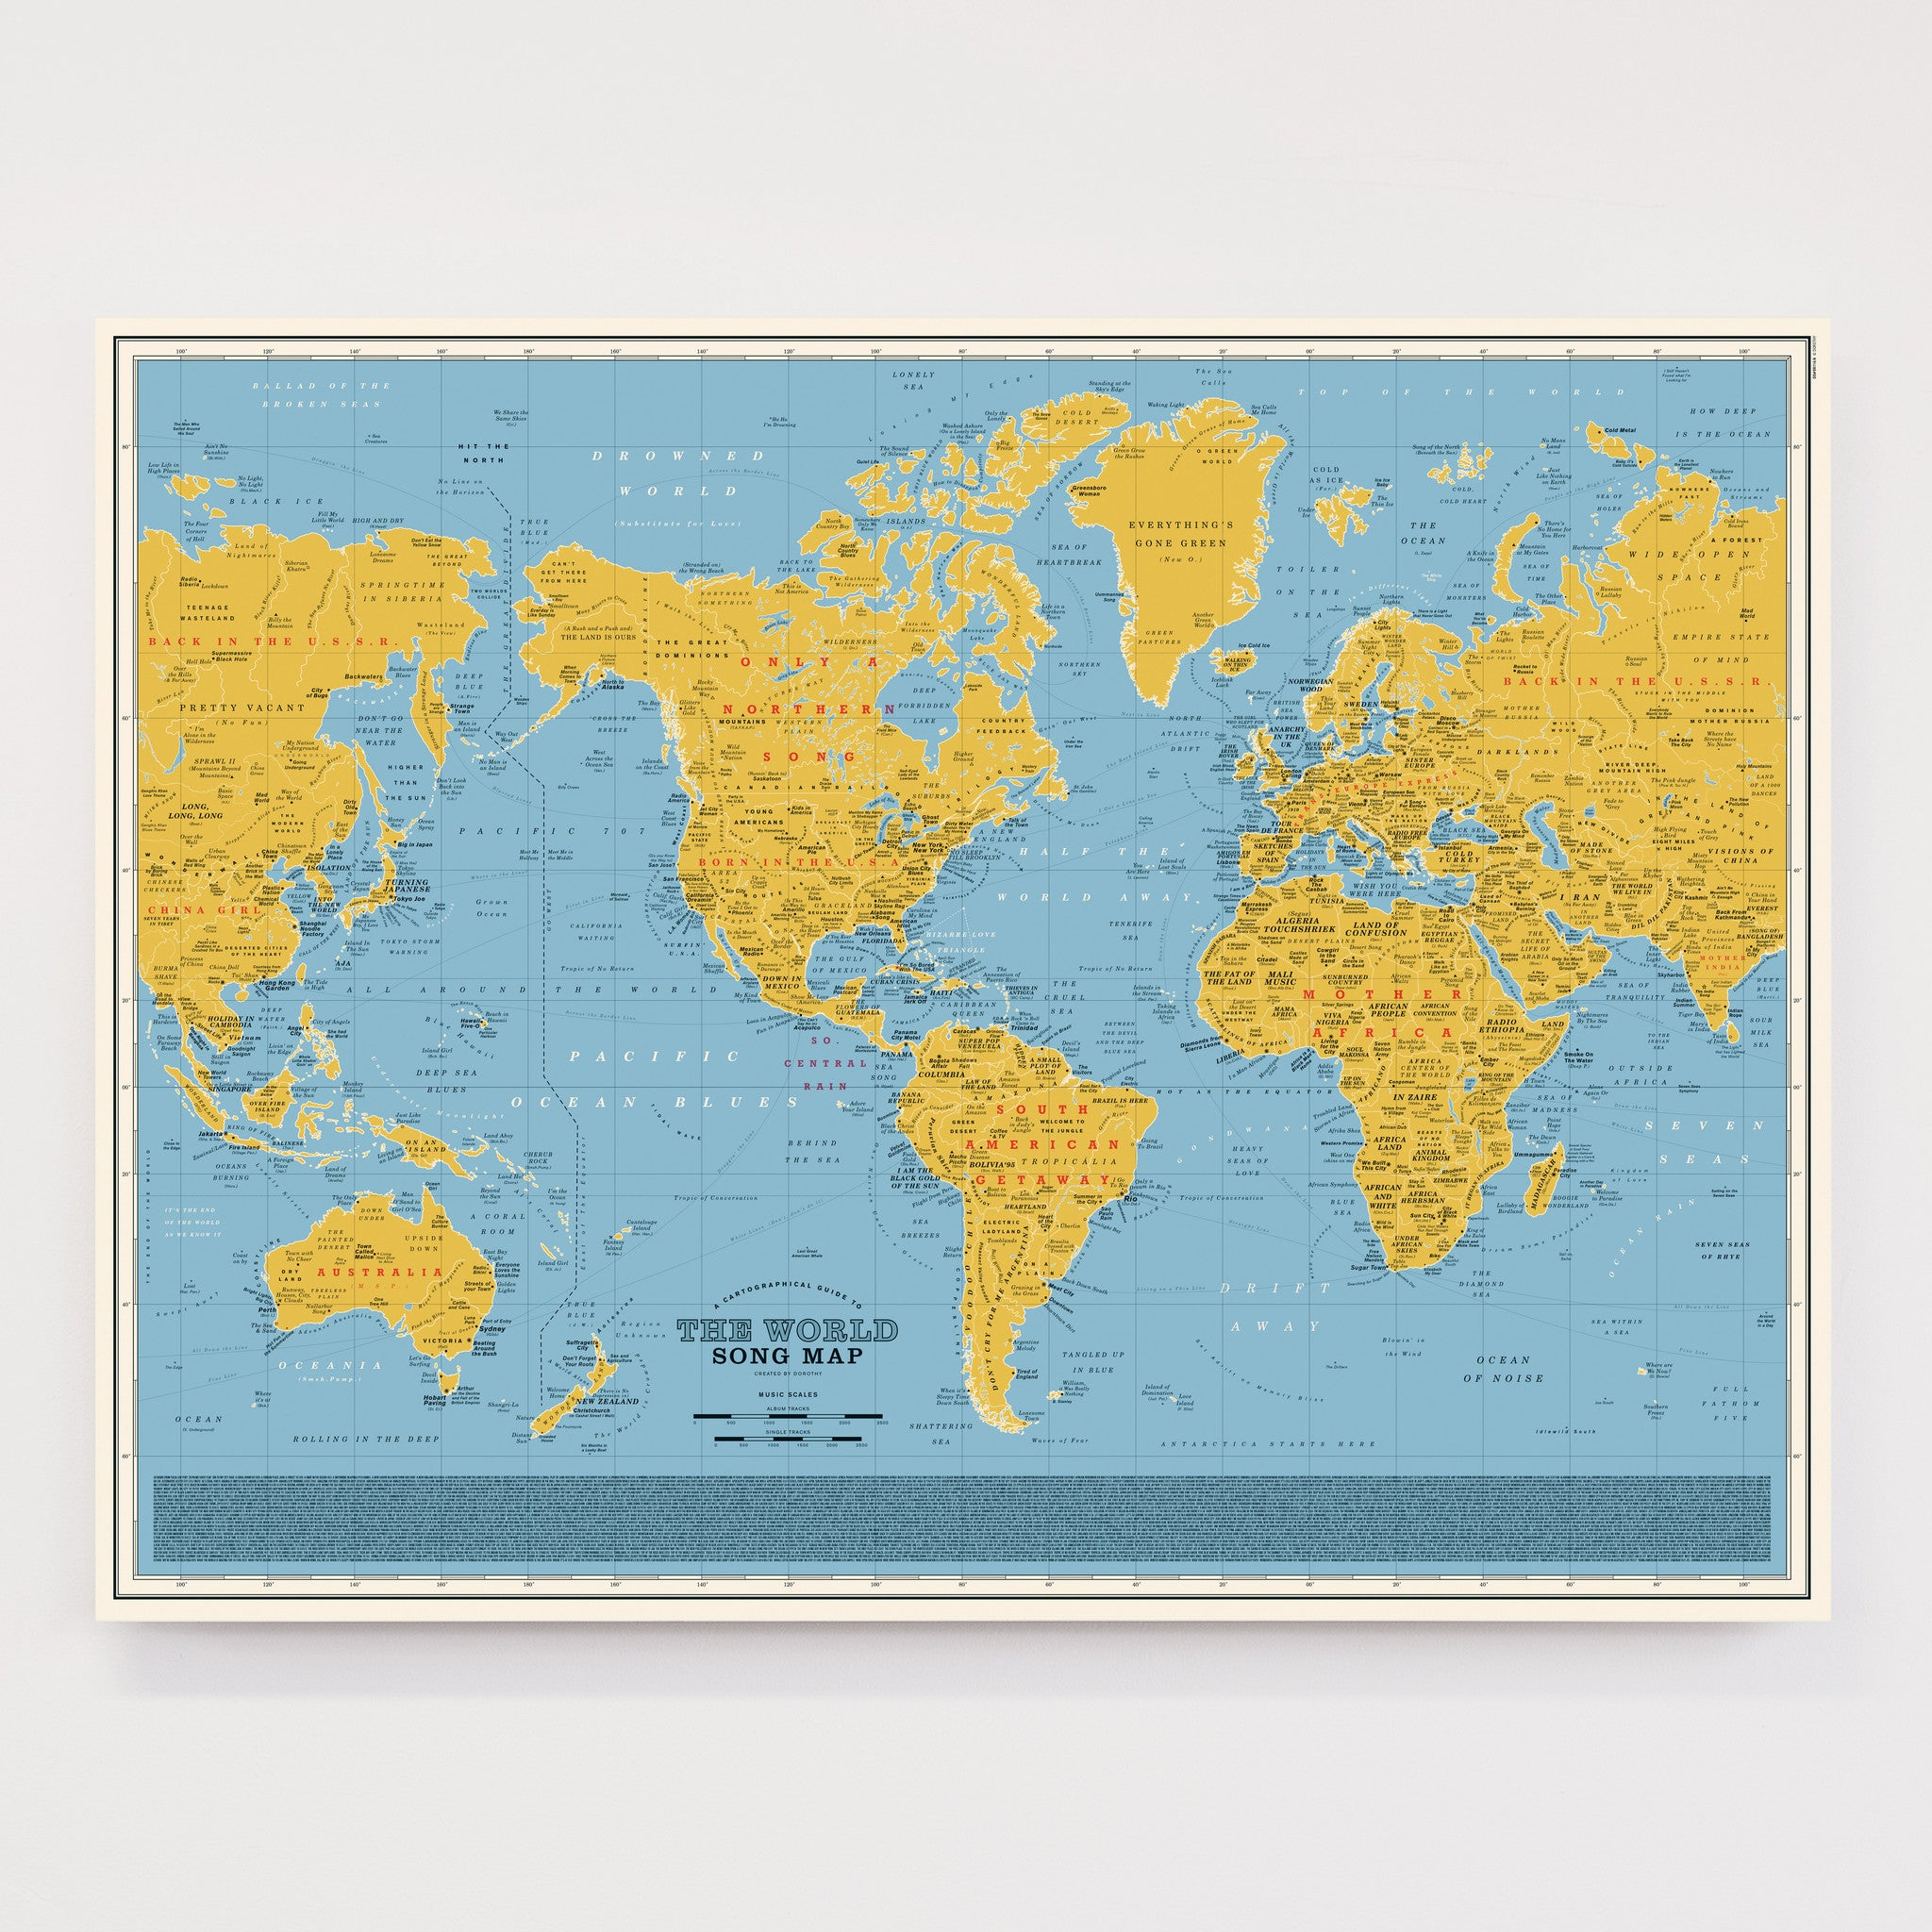 World Song Map - Special Edition on yellow numbers, globe map, yellow characters, rabies map, yellow sea in asia, editable map, lyme disease map, plain map, country map, alaska range map, mercator map, global map, ancient aegean map, diphtheria map, yellow cruiser motorcycles, yellow clock, u.s. internet map, black and white map, eastern hemisphere map, www.world map,